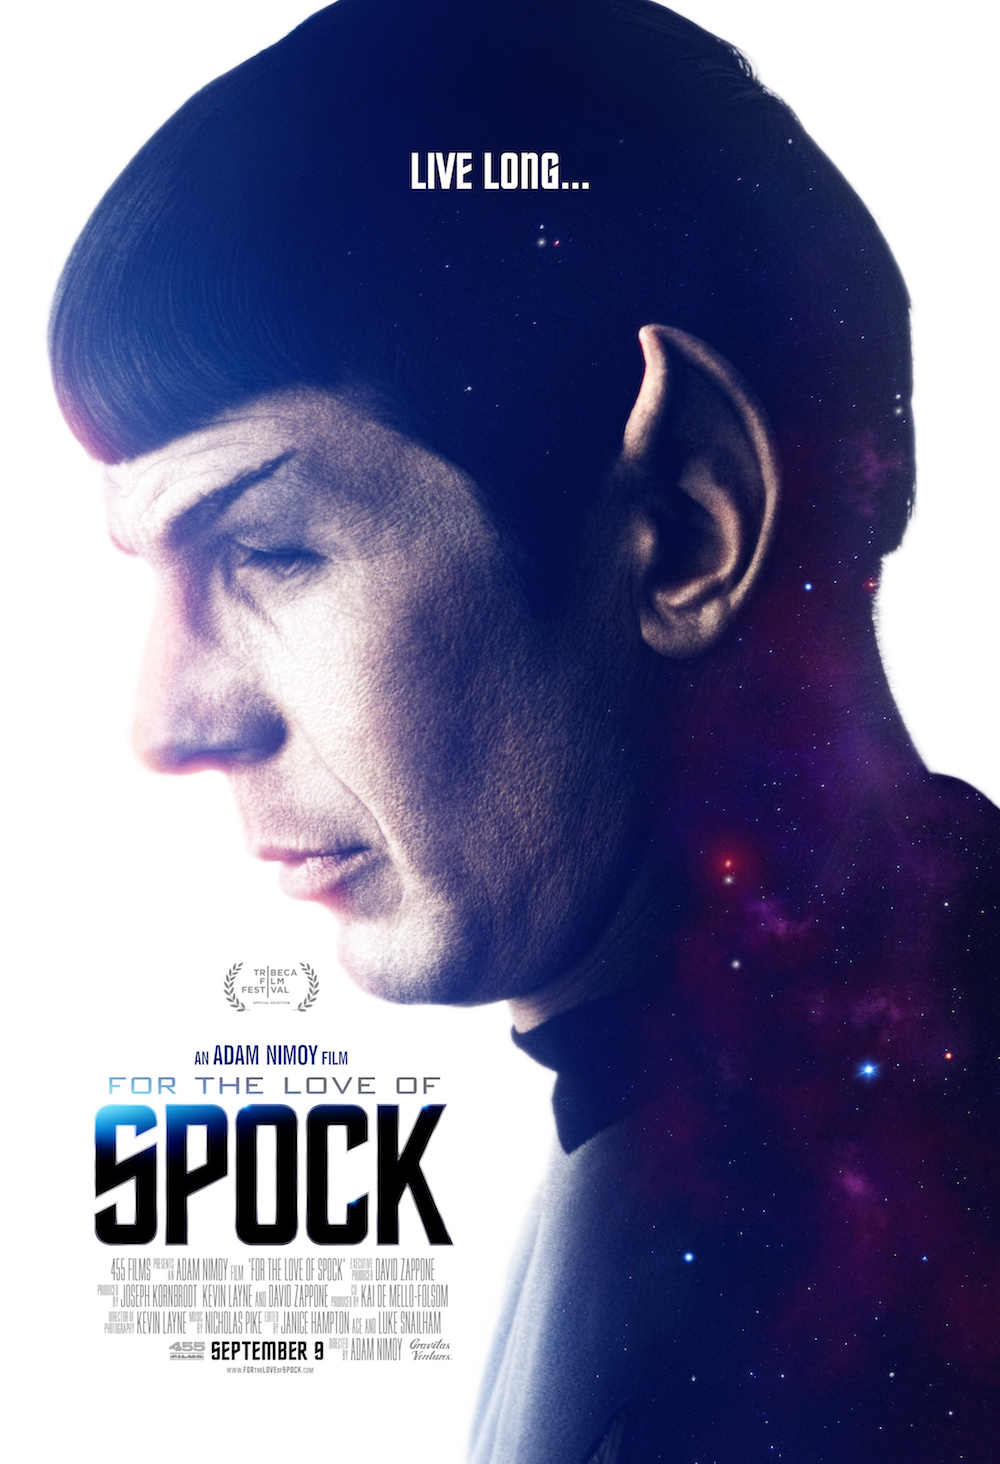 ccxp-2016-for-the-love-of-spock-2